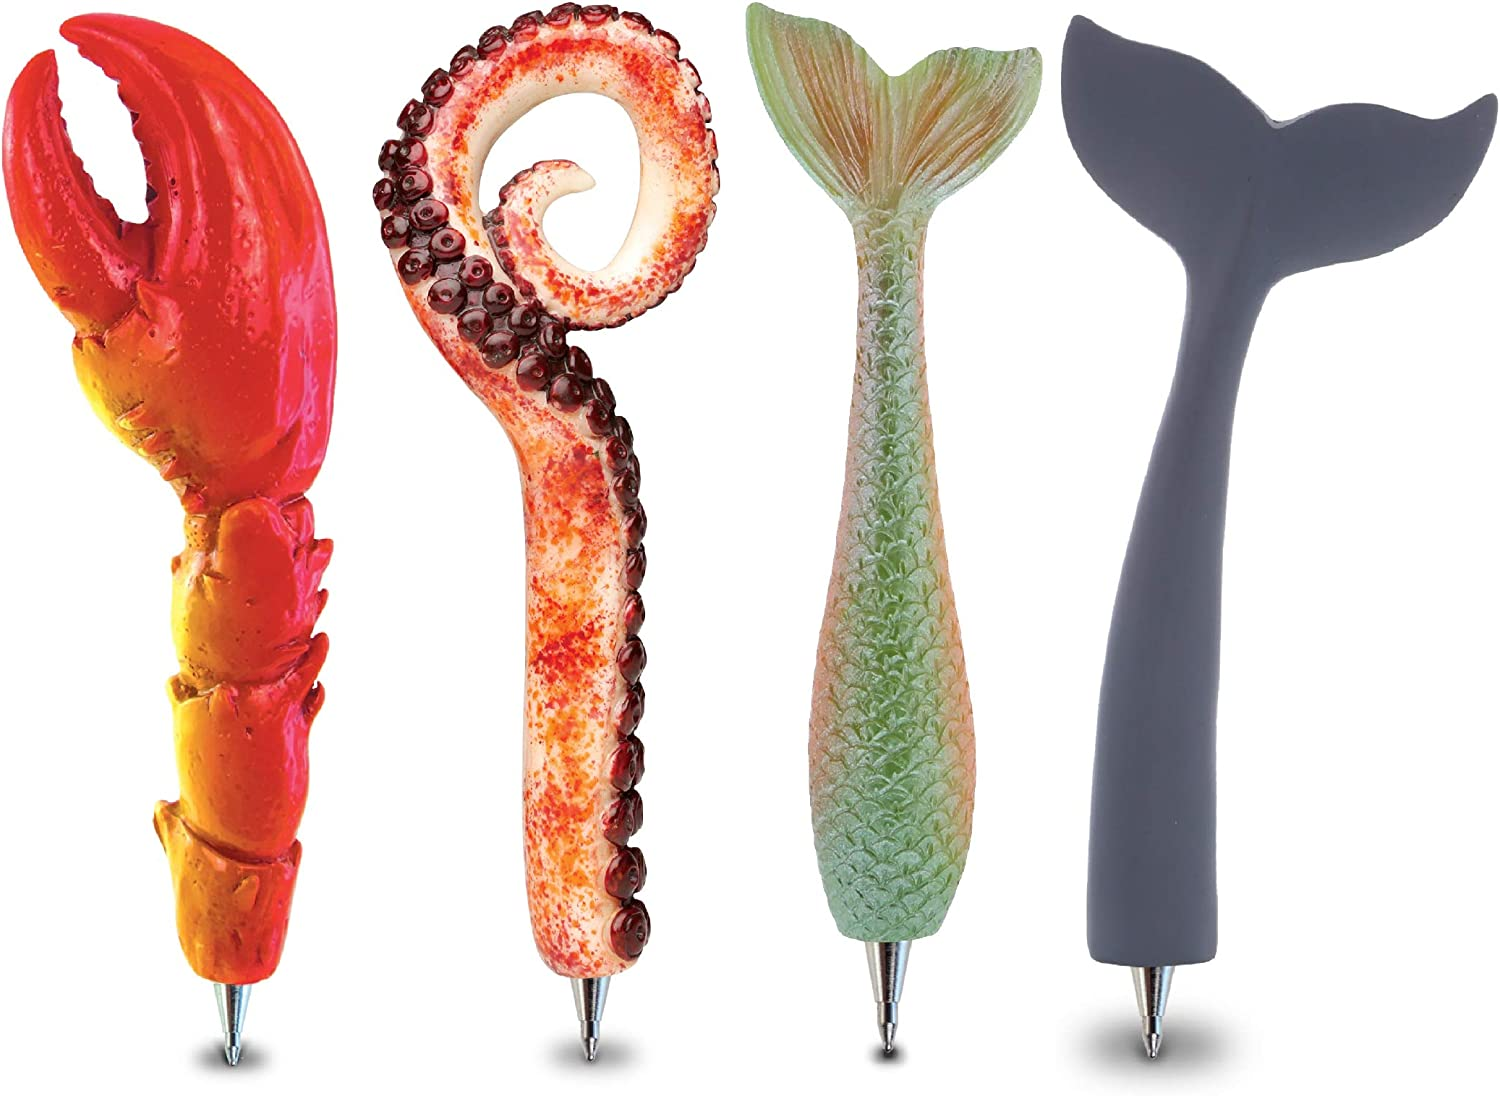 Planet Pens Bundle of Crab Claw, Octopus Arm, Mermaid Tail, Whale Tail Novelty Pens - Unique Office Supplies Ballpoint Pens Colorful Sea Life Writing Pens Instrument For School & Office Decor - 4 Pack